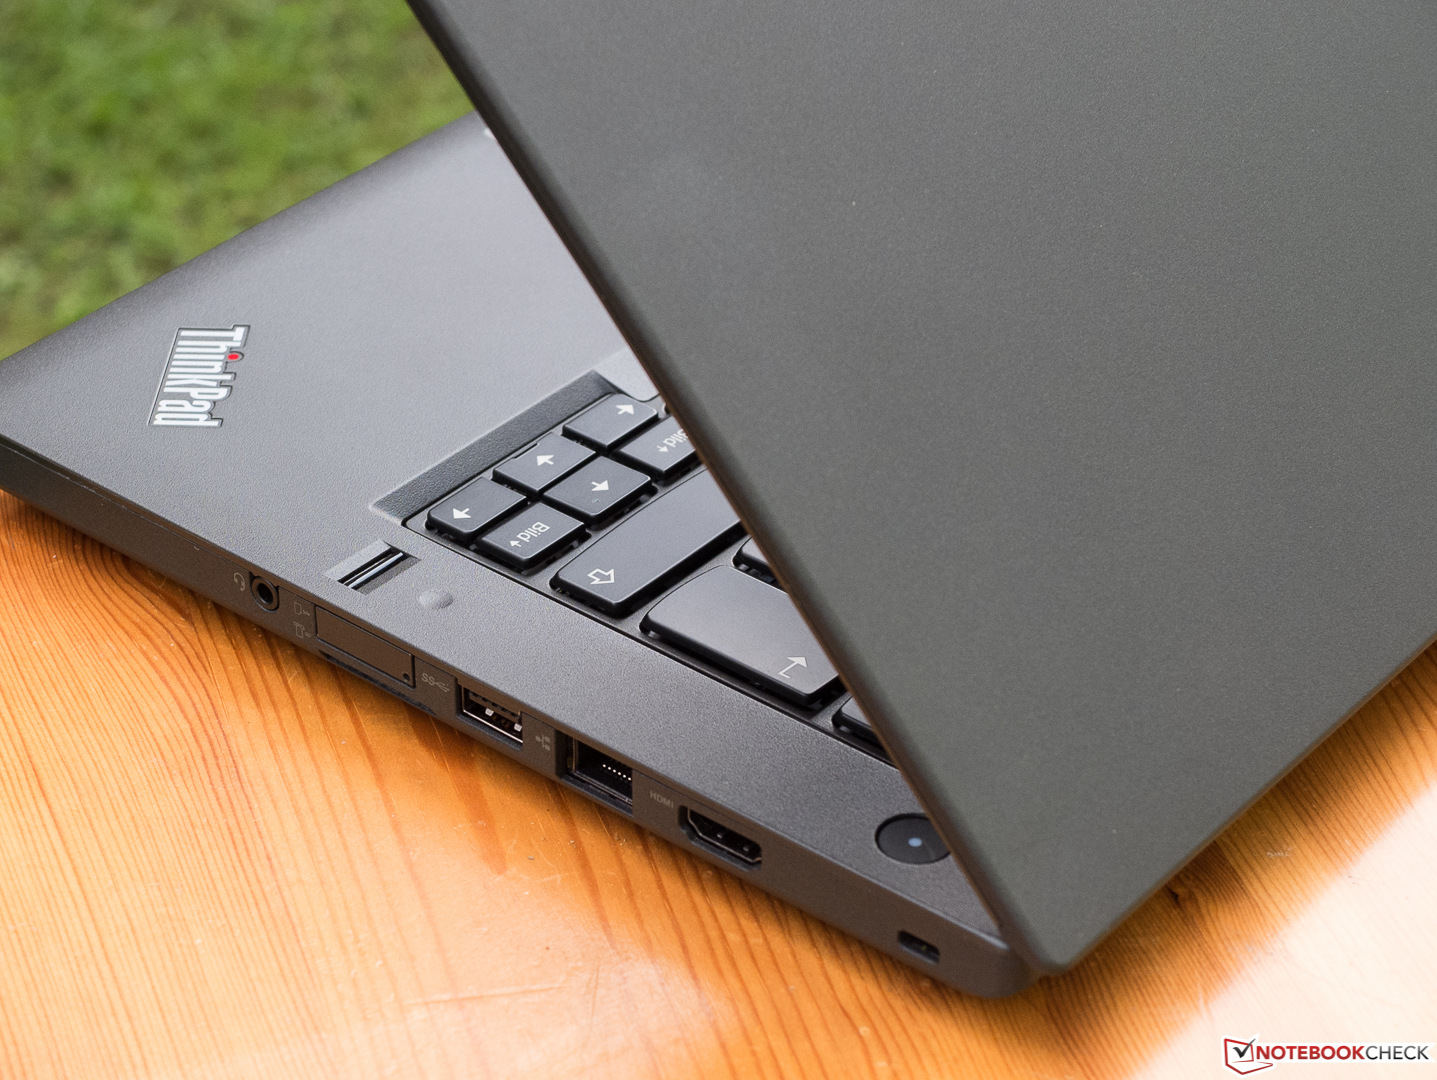 Lenovo ThinkPad T460 (Core i5, FHD) Notebook Review